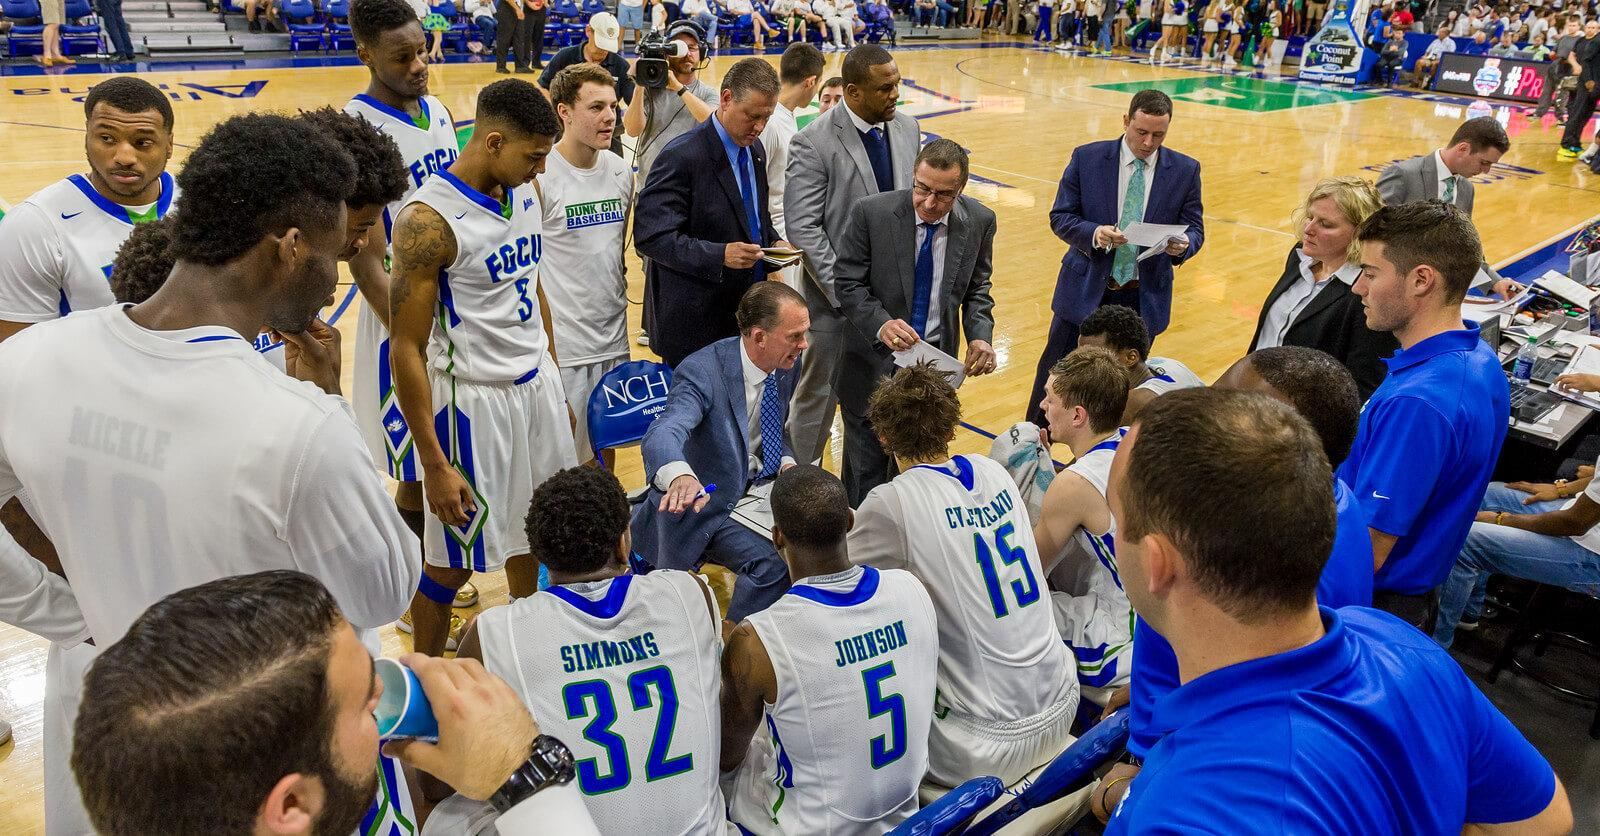 FGCU men's basketball head coach Joe Dooley signs extension to remain with team